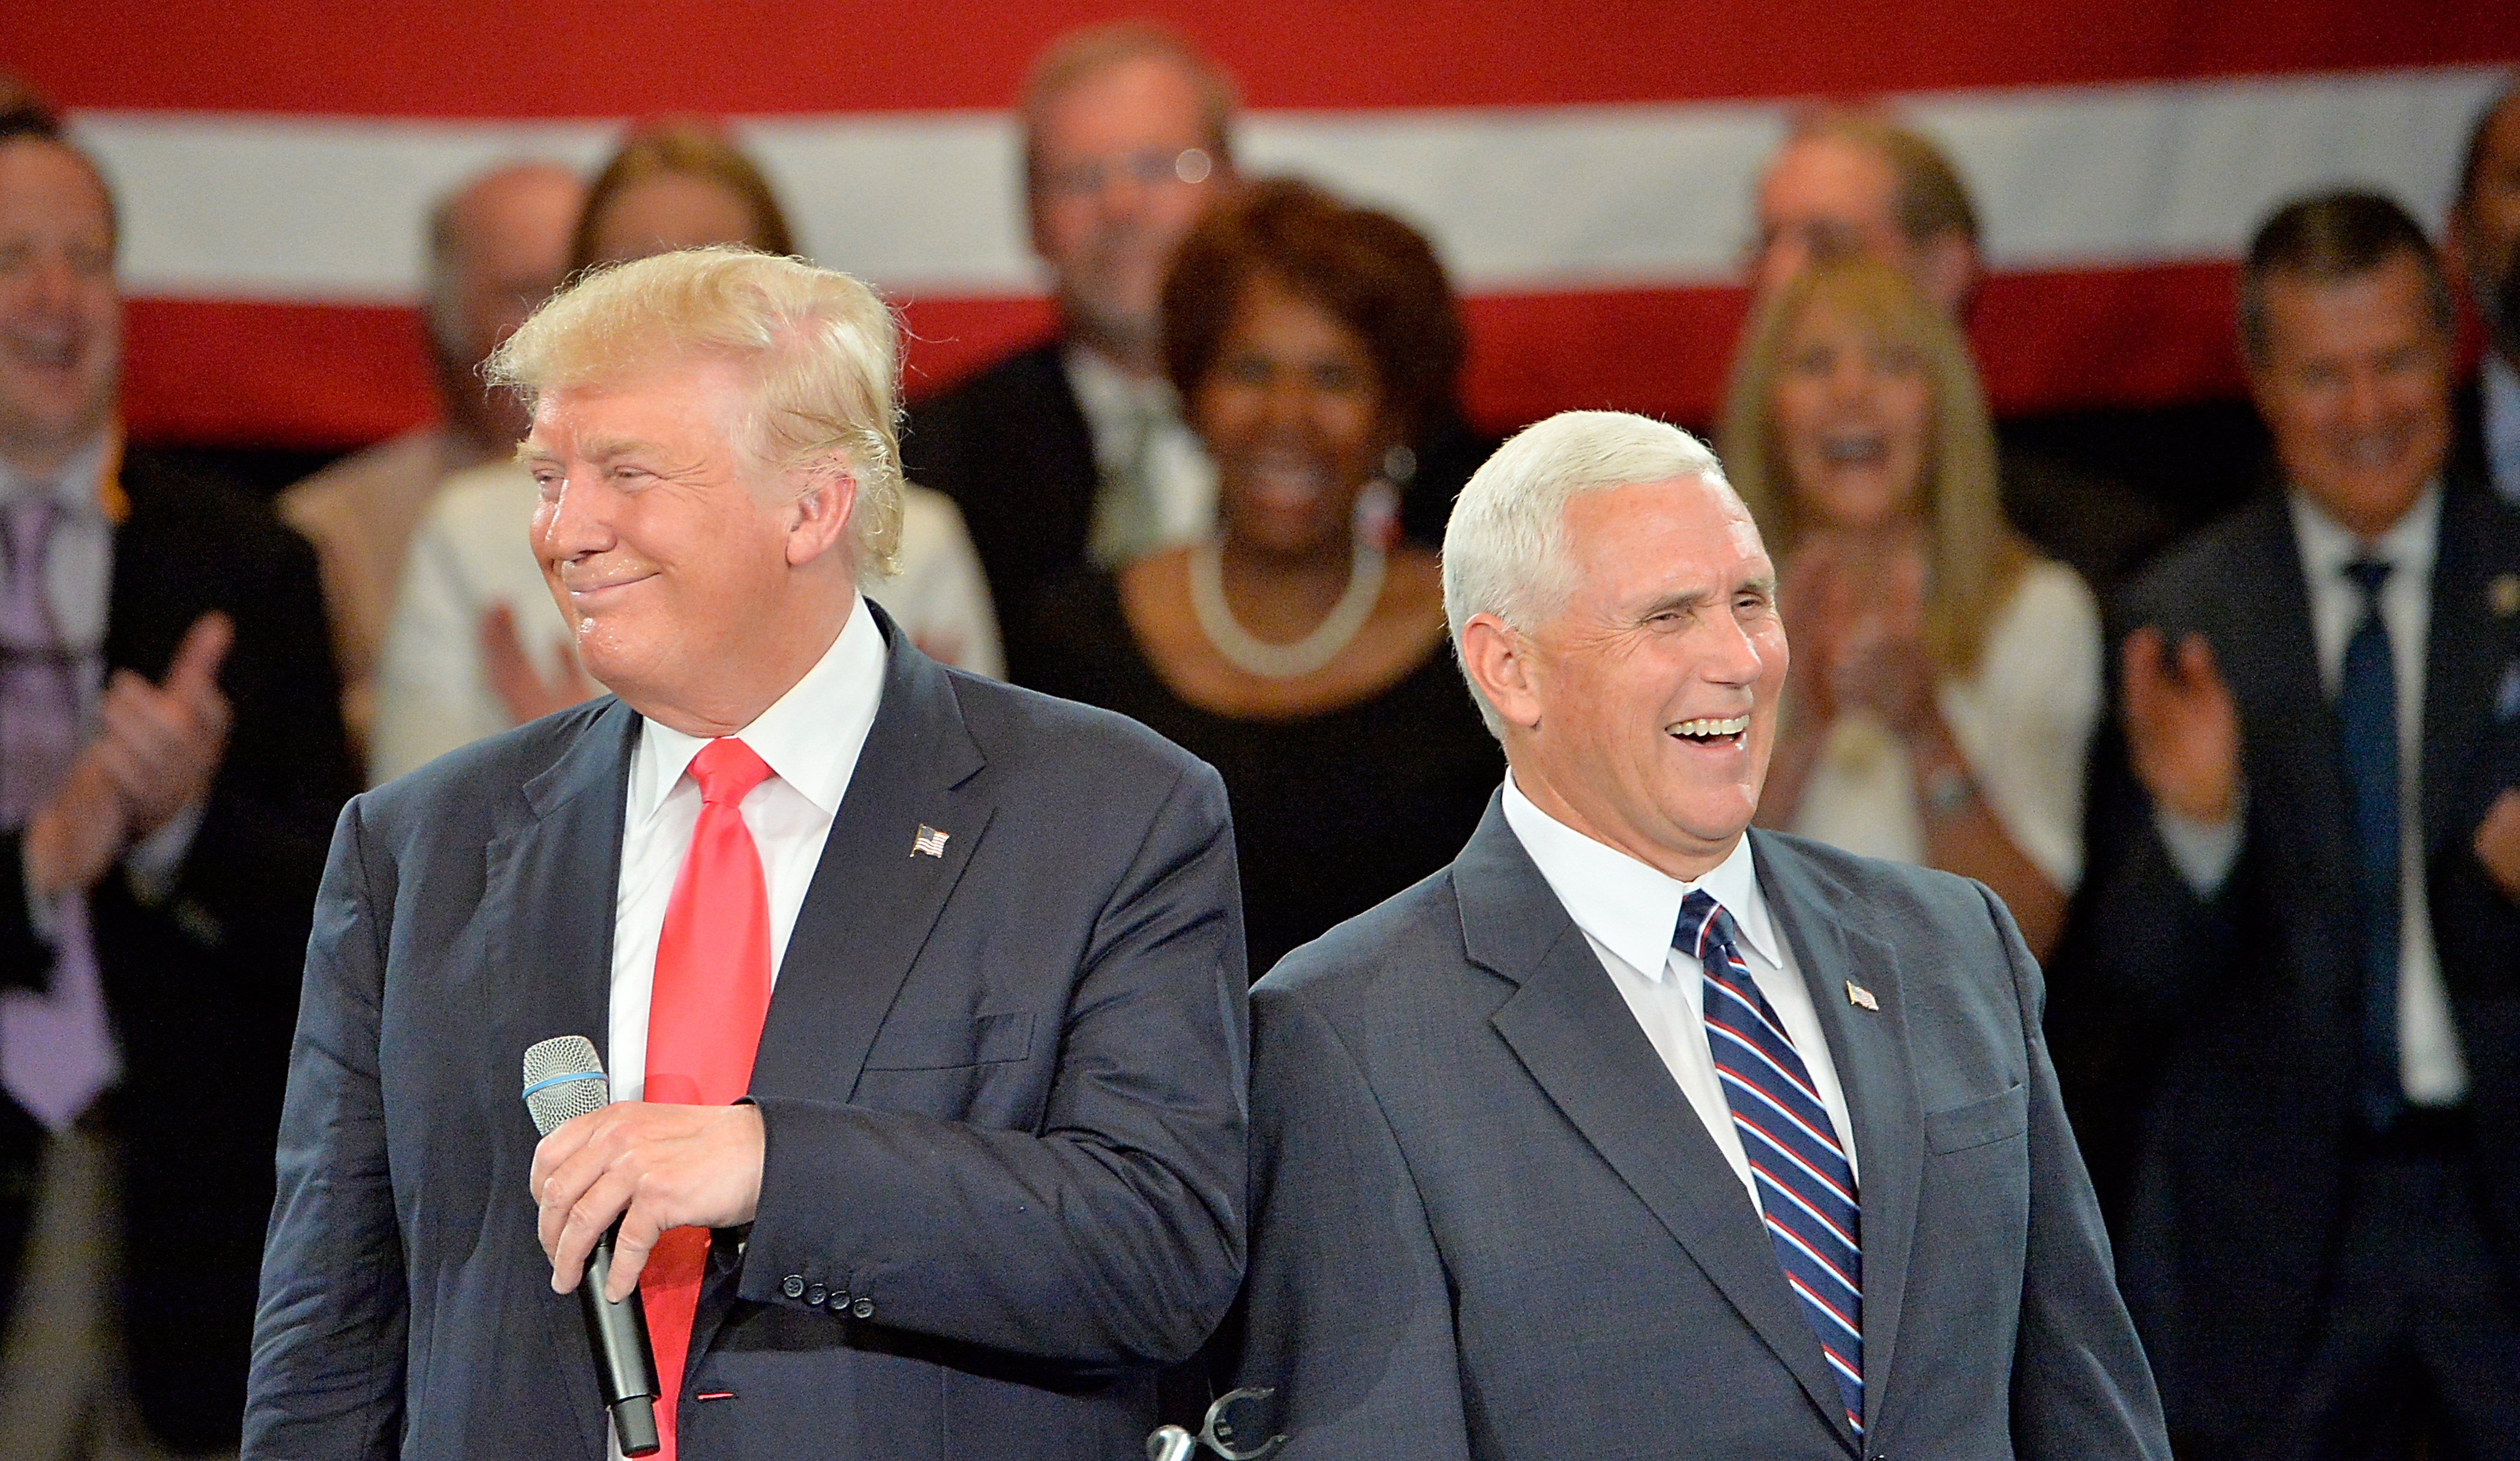 Mike Pence and Donald Trump disagree on a heck of a lot of issues